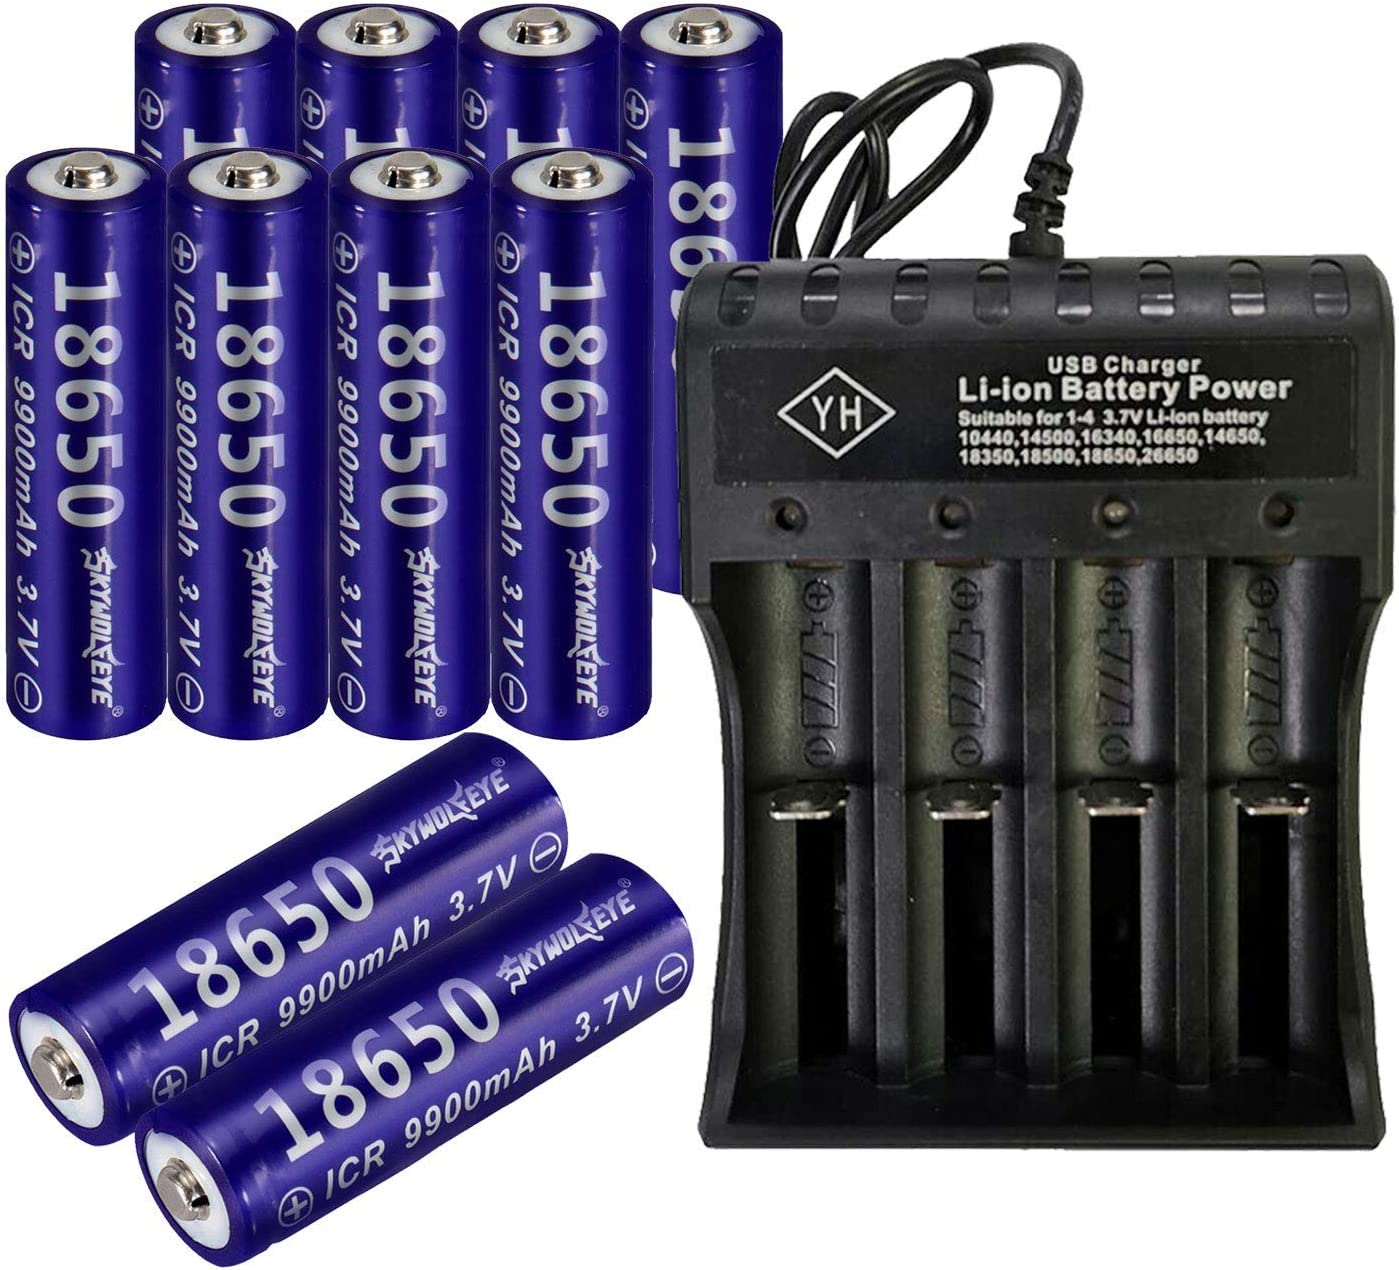 8 PCS of 18650-Rechargeable-Batteries,9900mAh,3.7V Li-ion,Button Top,65mmX18mm,With 1 PCS 2 Slots USB Universal Smart Battery Charger,For 18650 Flashlight headlight /& Electronic Tools